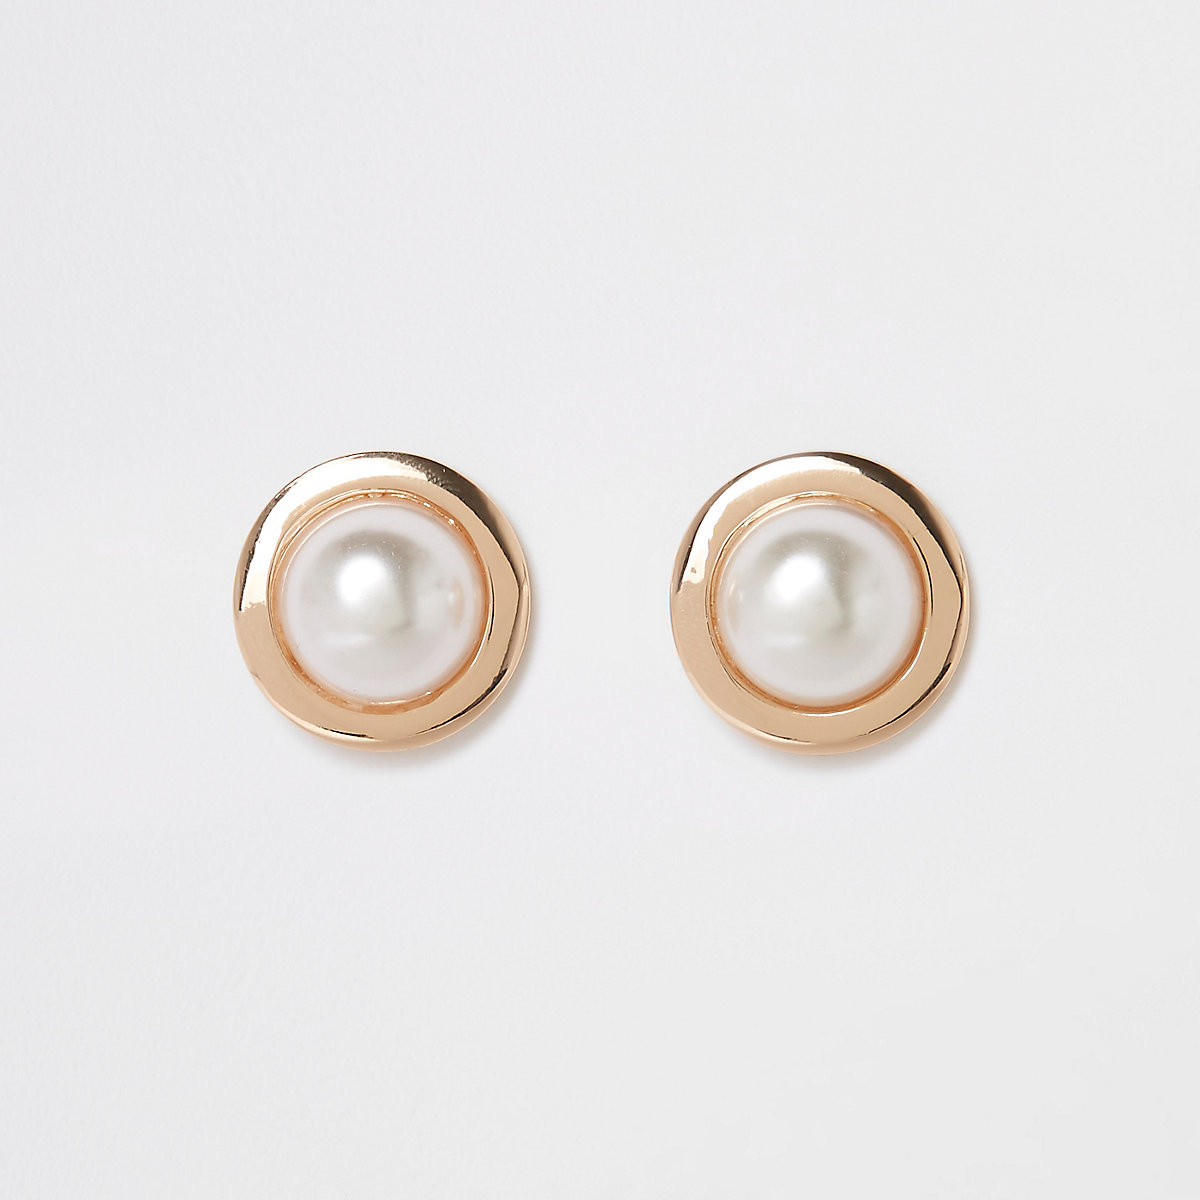 Gold colour large pearl stud earrings